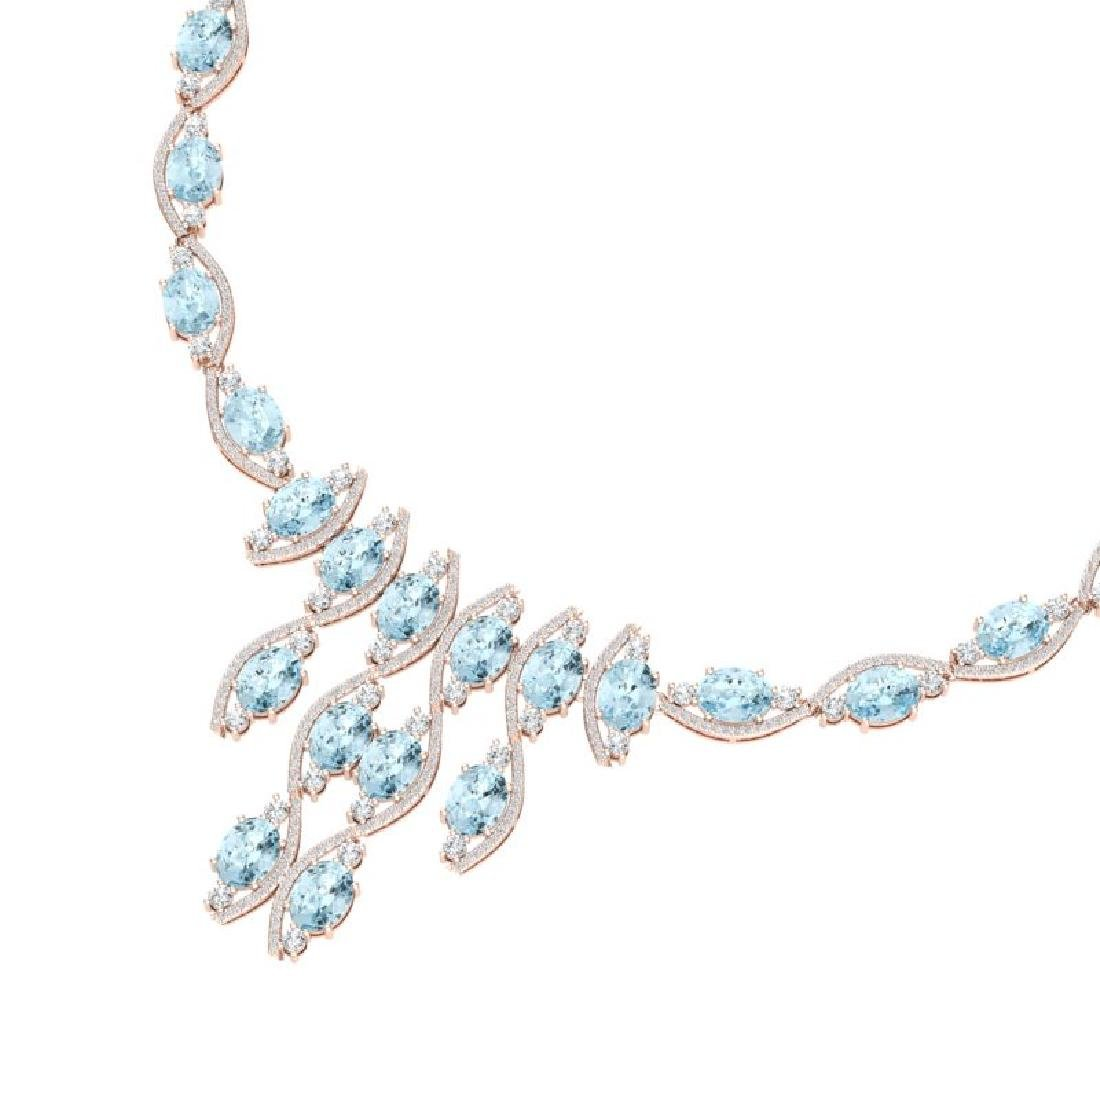 68.12 CTW Royalty Sky Topaz & VS Diamond Necklace 18K